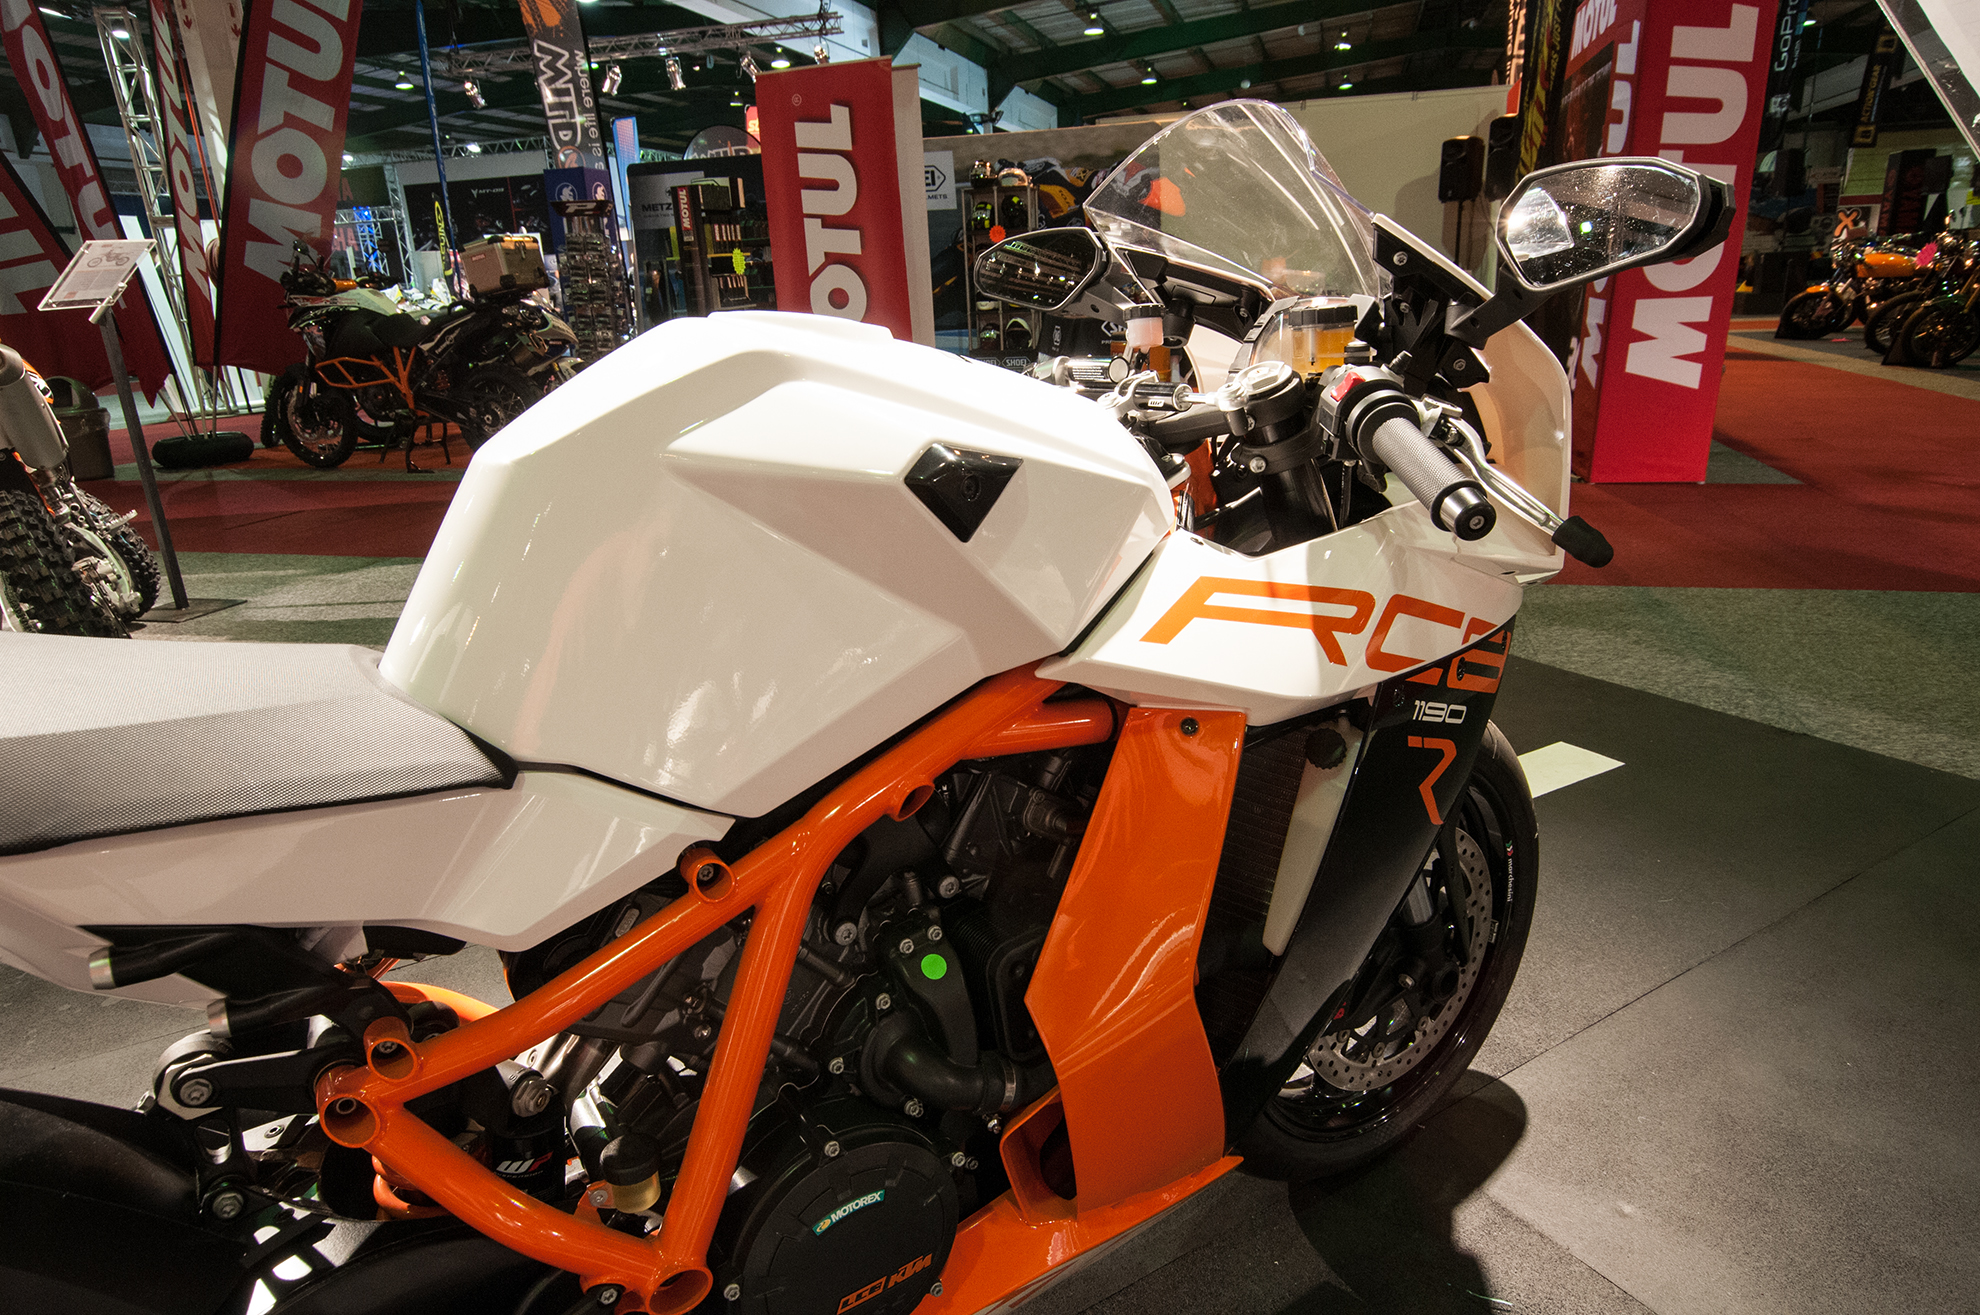 KTM Amid Motorcycle Show